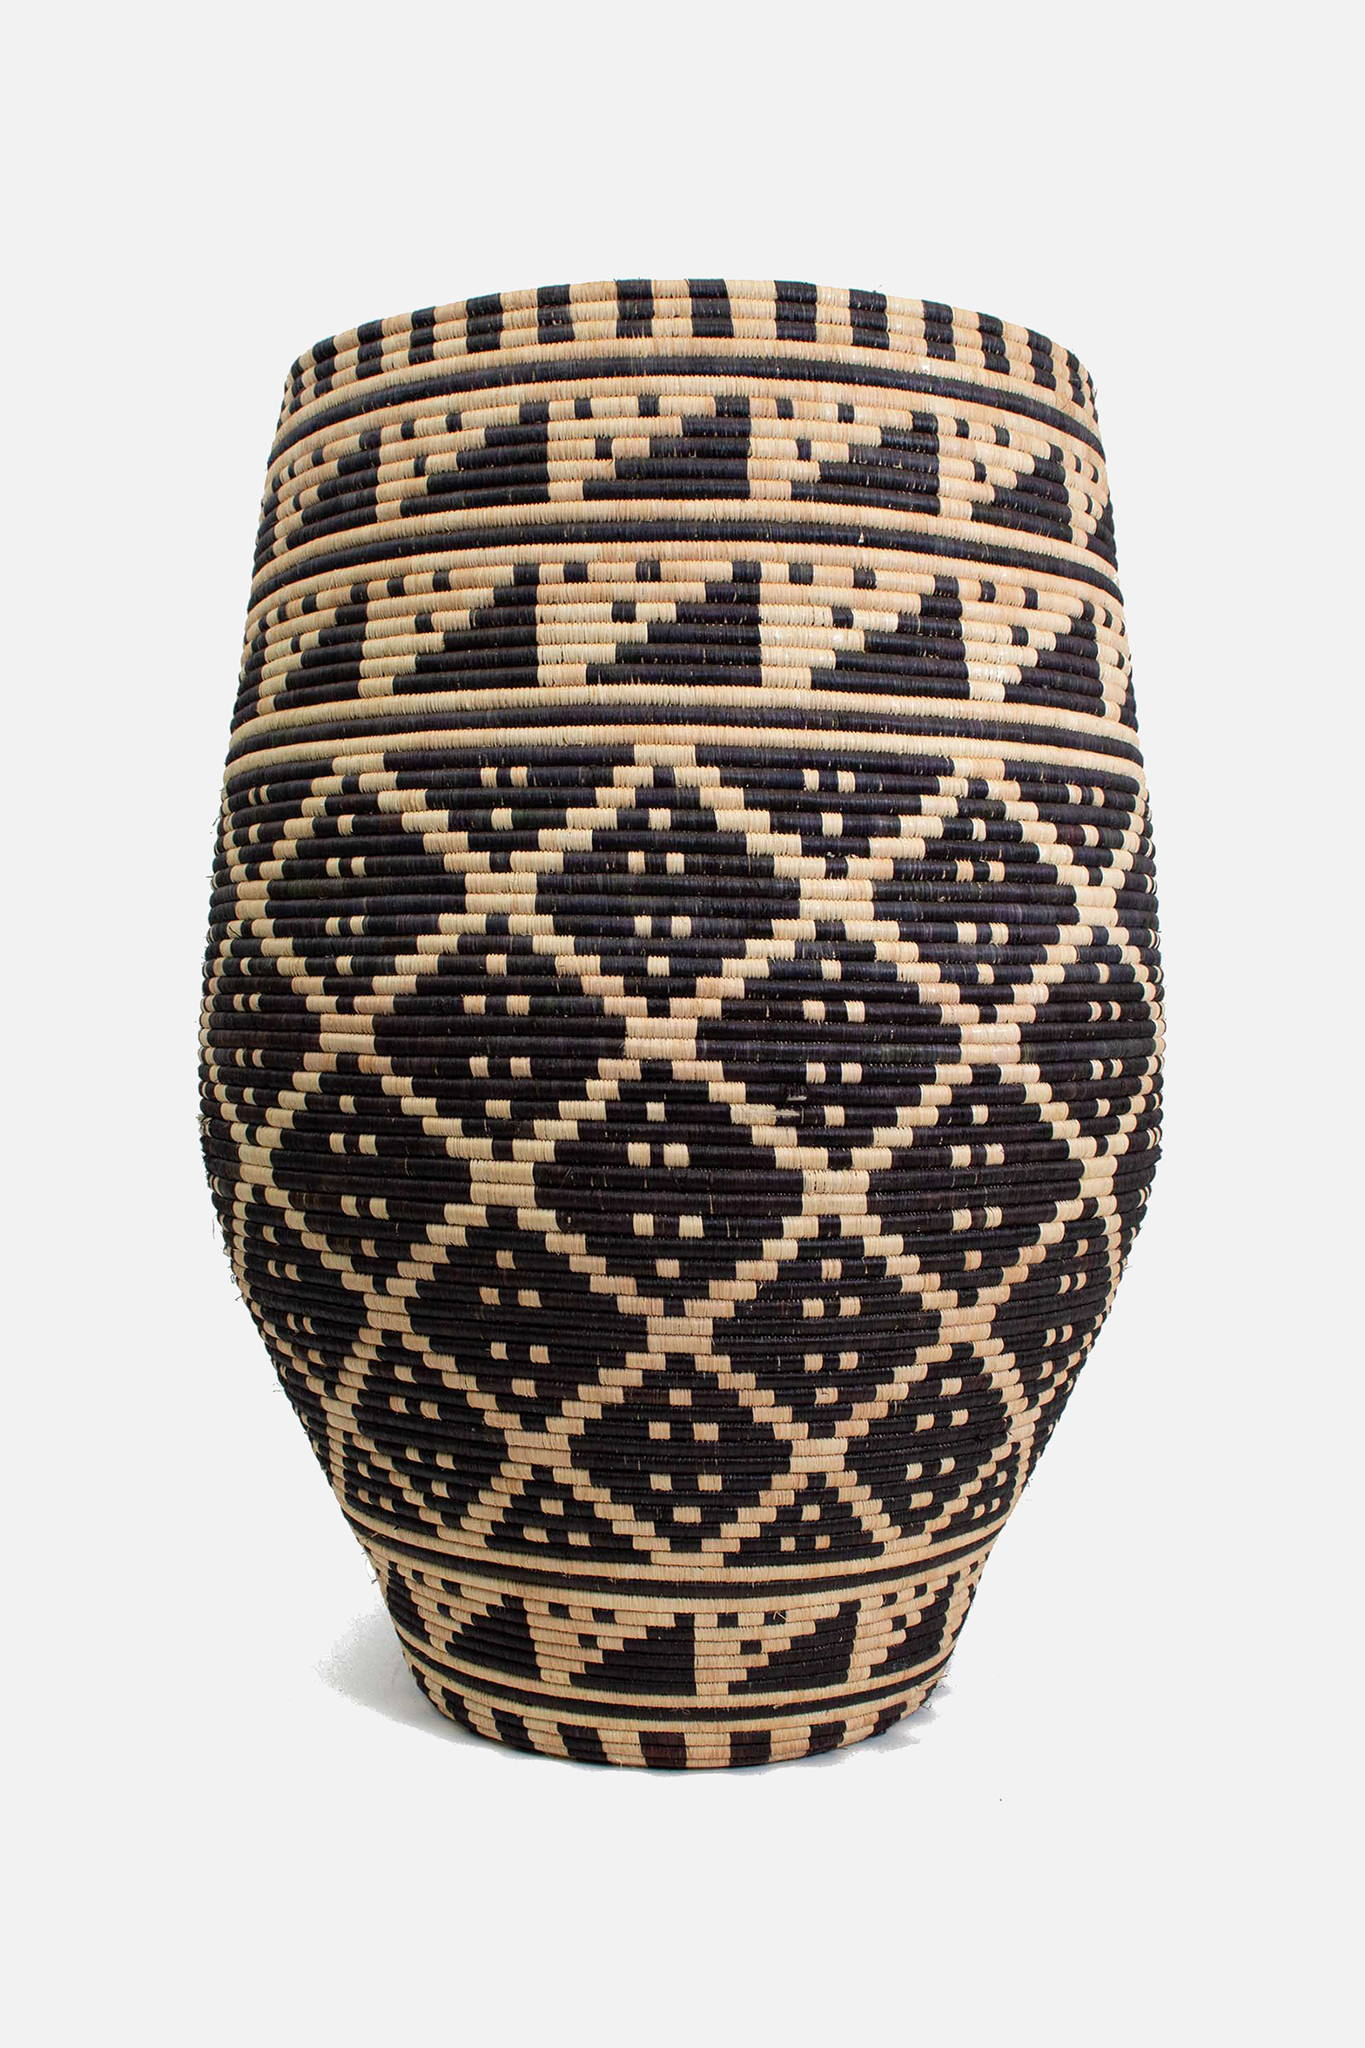 OVERSIZED KALANGALA FLOOR BASKET $ 925